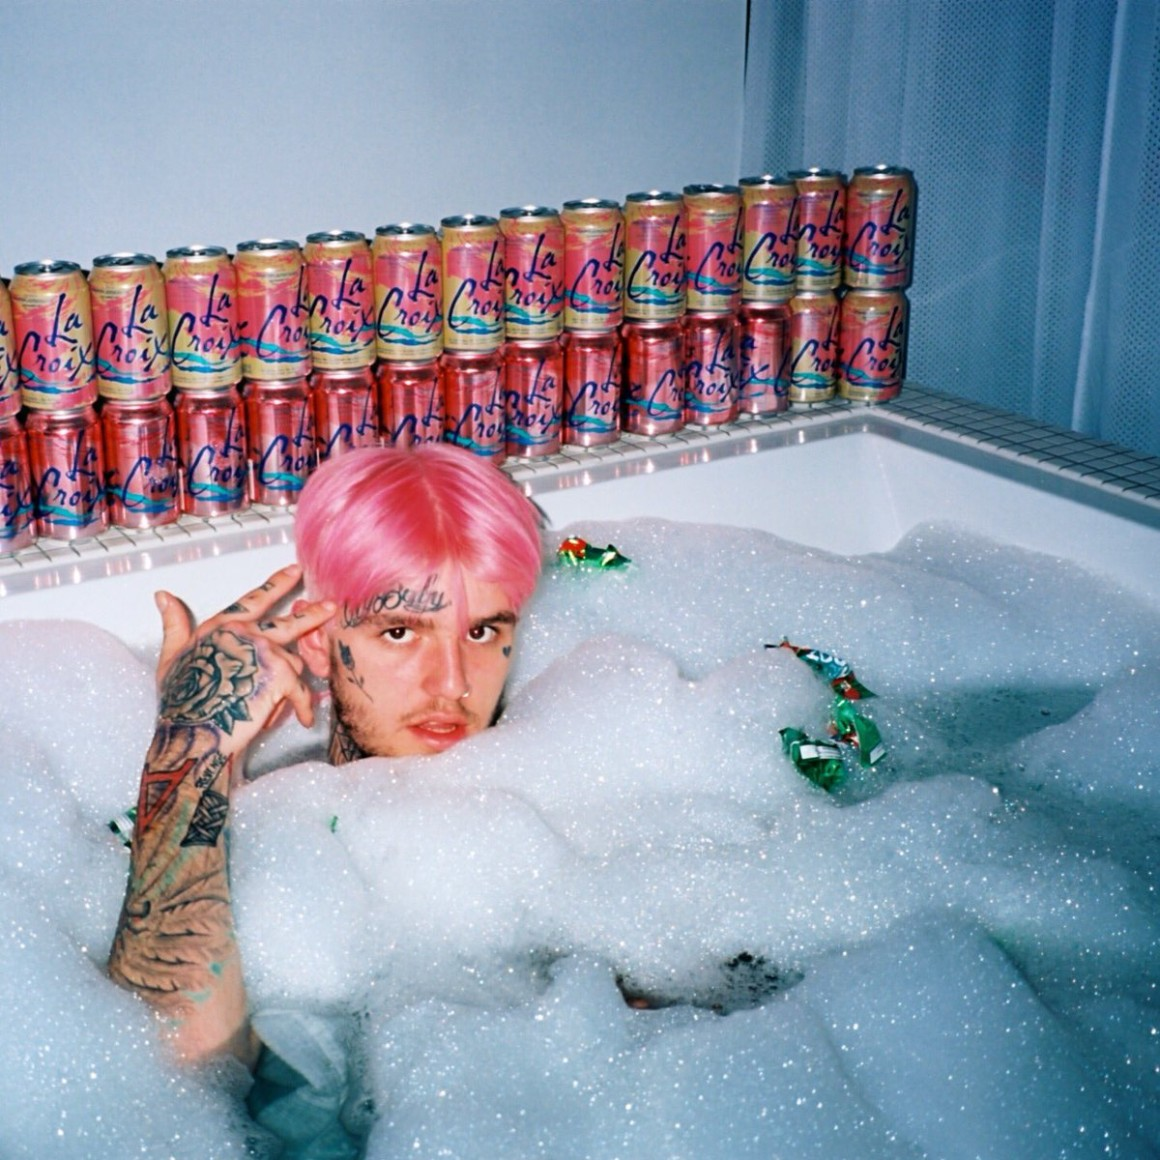 Daily Chiefers Lil Peep Dead